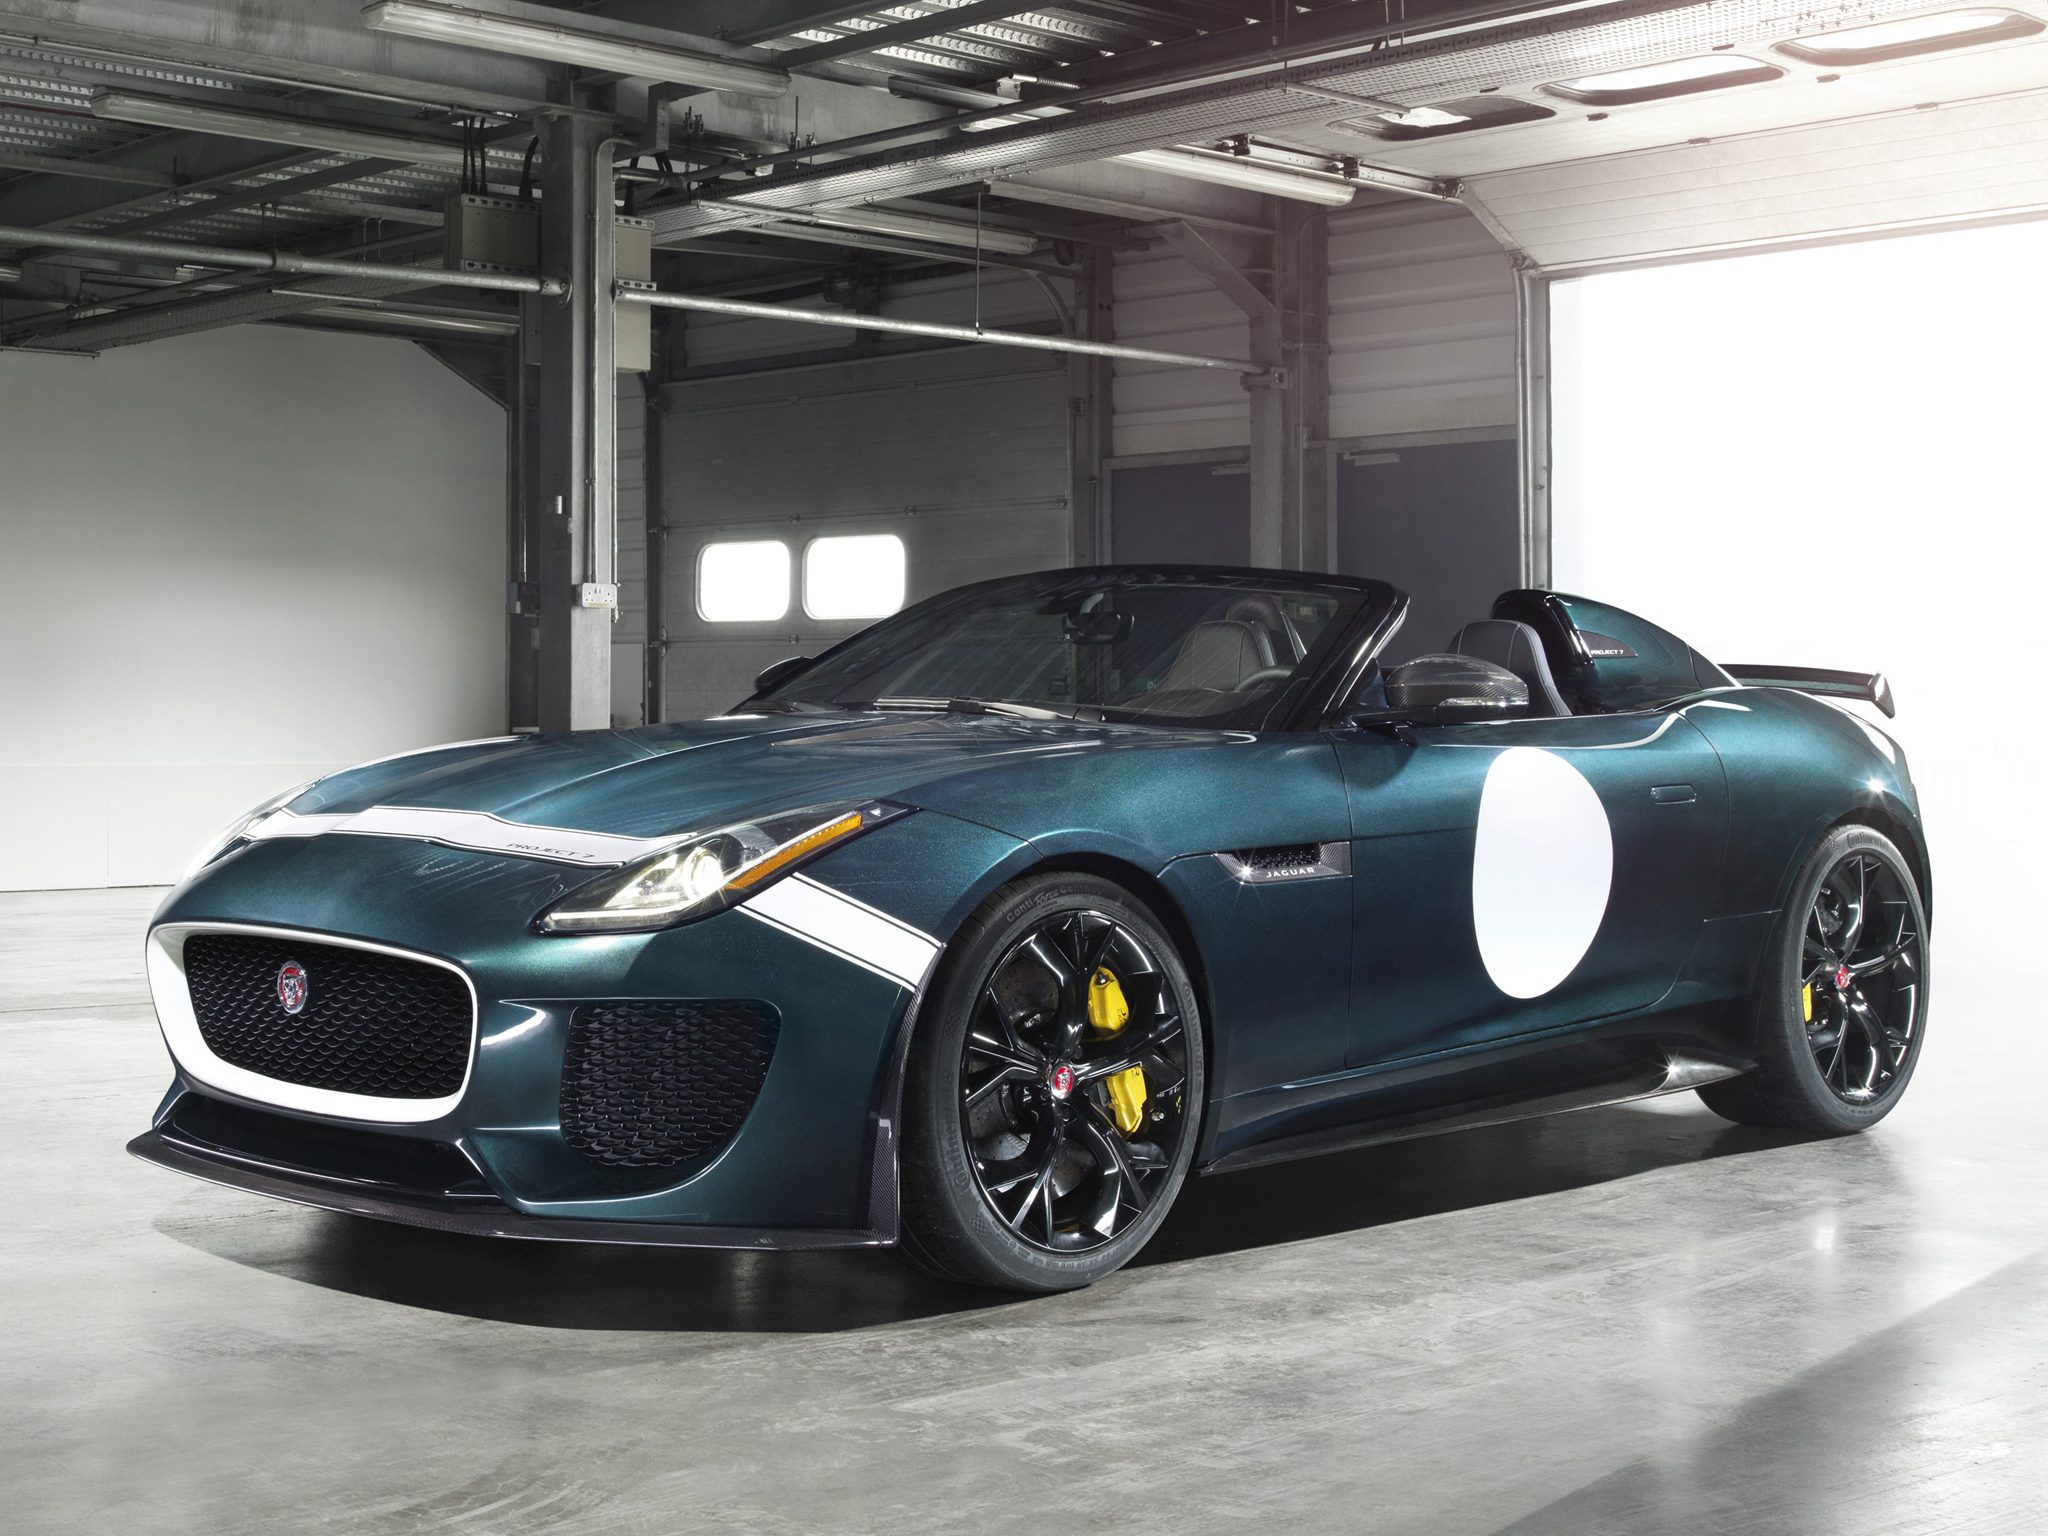 jaguar-f-type-project-7-2014-001.jpg